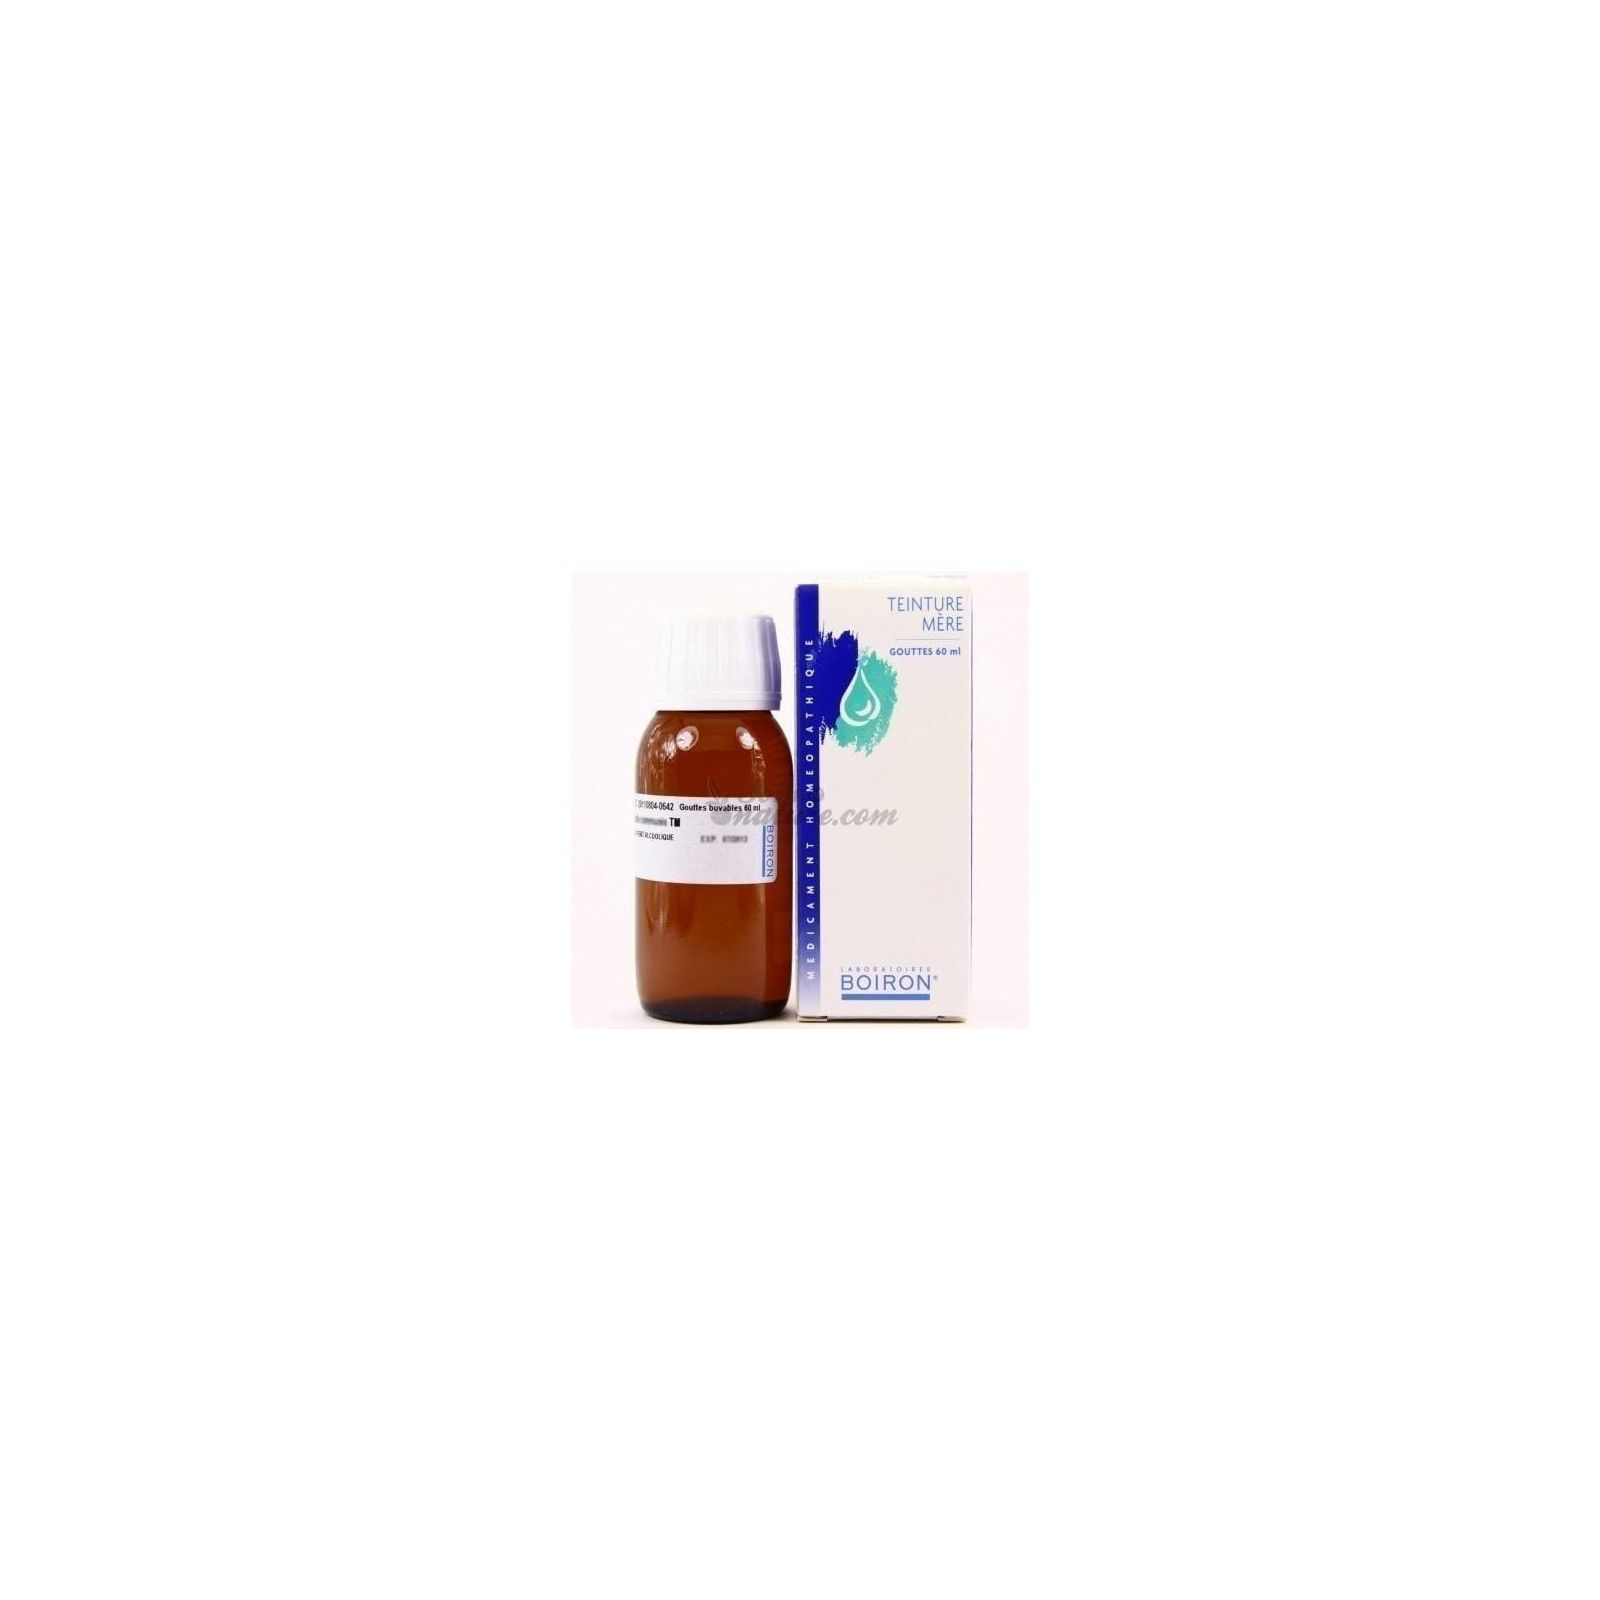 Boiron Dilutions 60ml Complexe for CA29.81